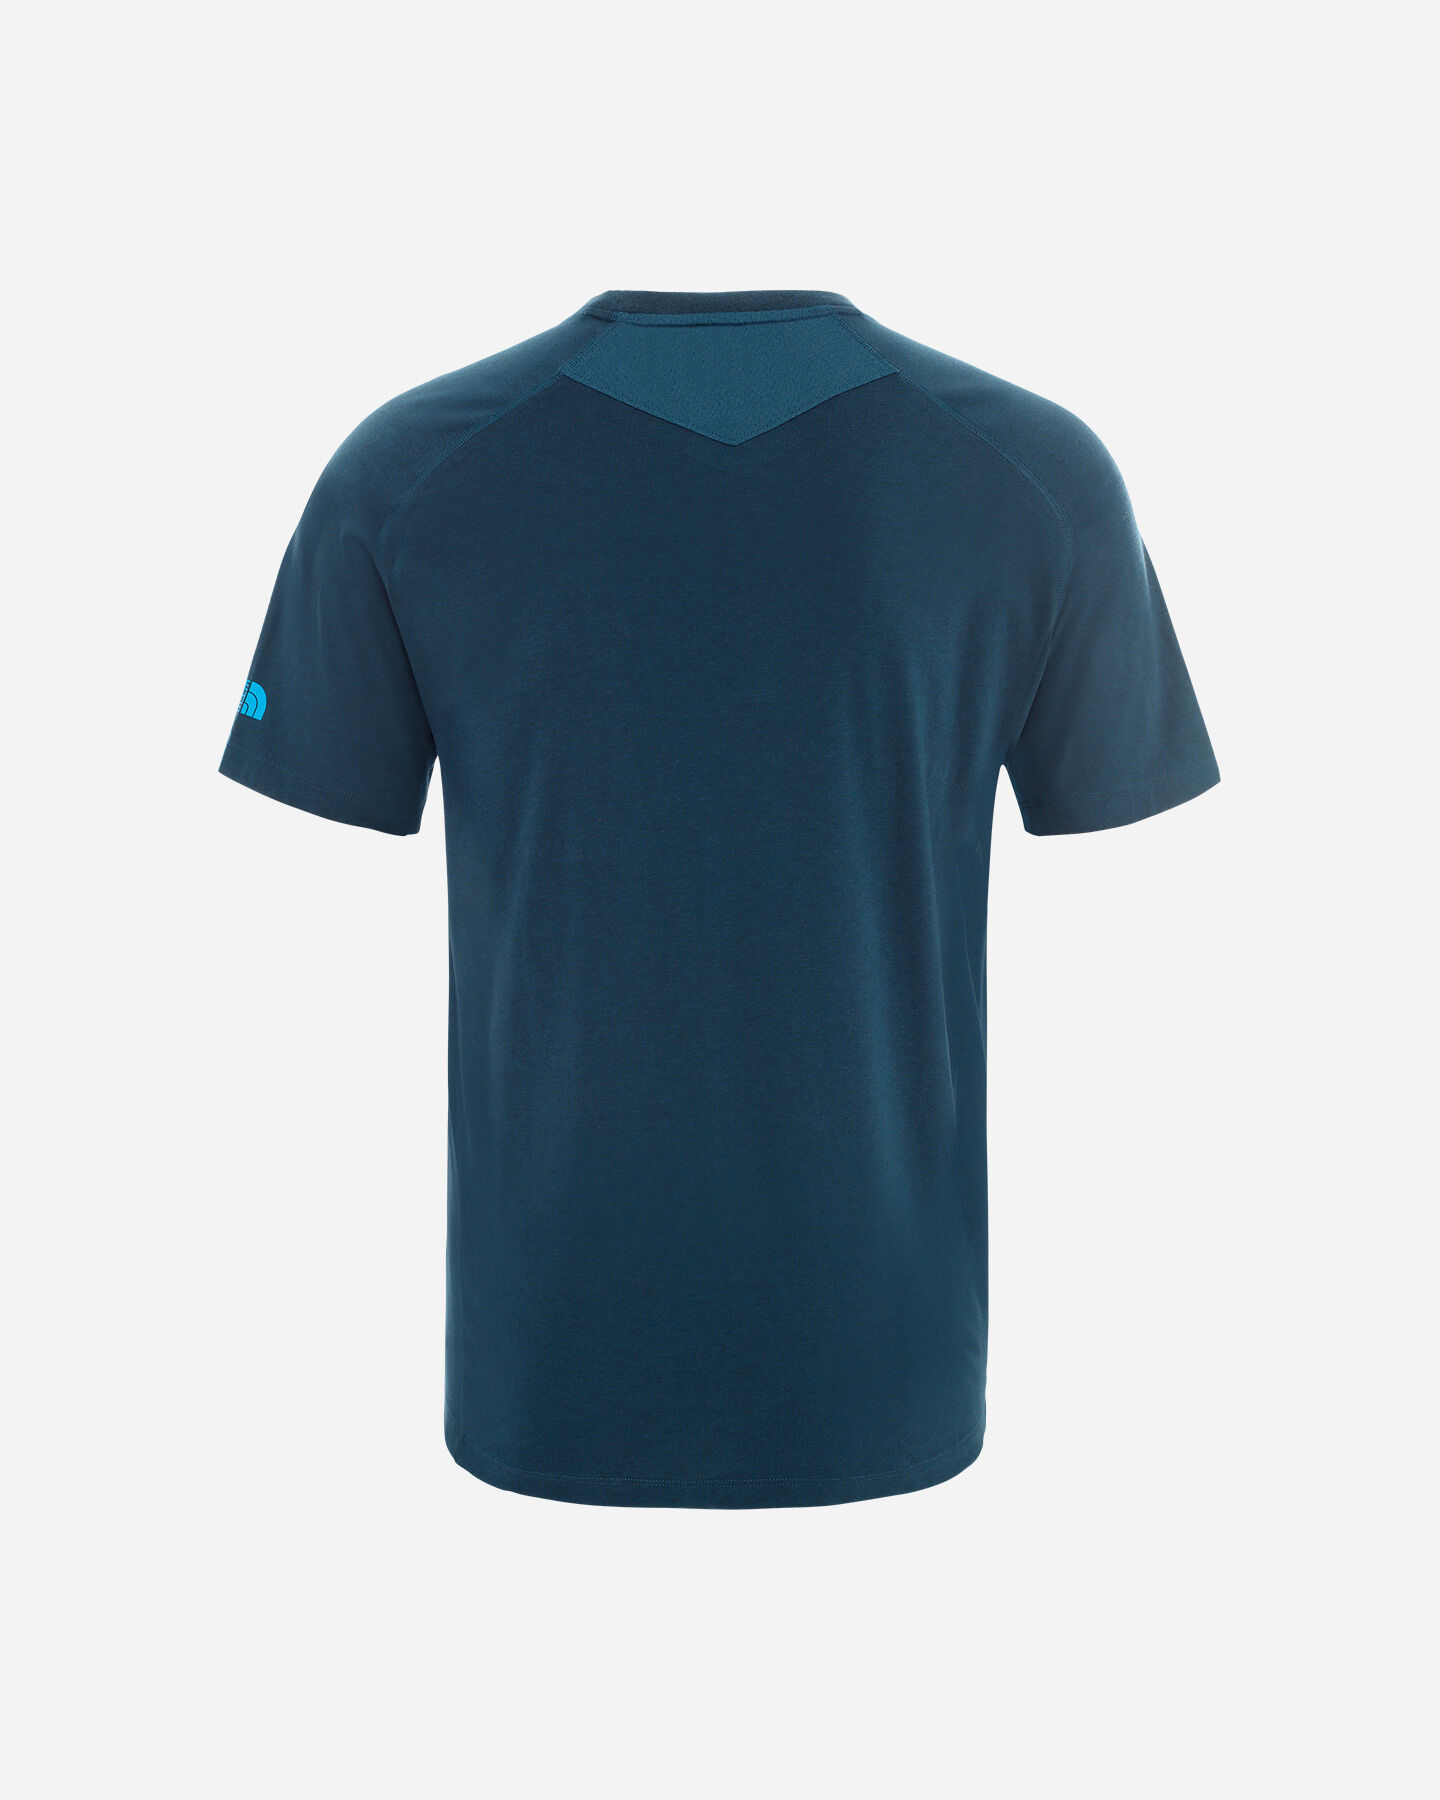 T-Shirt THE NORTH FACE WICKER M S5192886 scatto 1